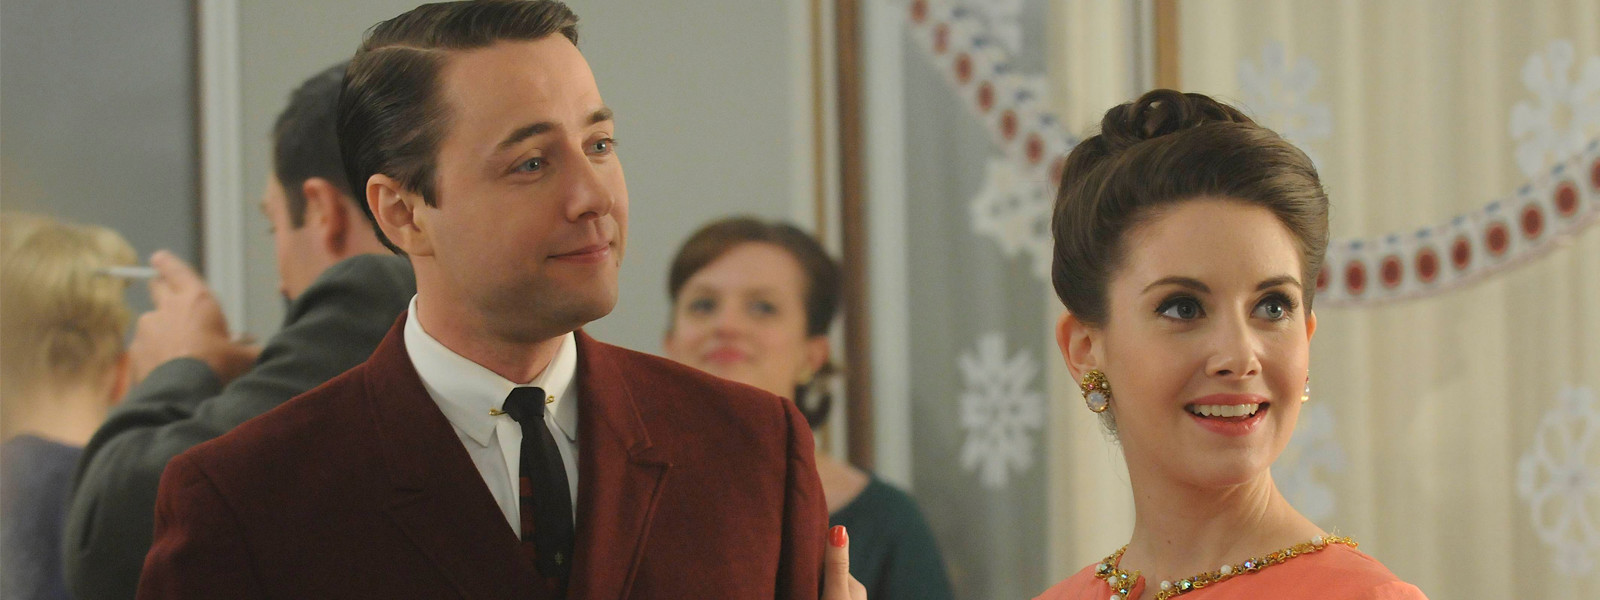 Mad Men - Christmas Comes But Once a Year: Season 4, Episode 2 - AMC